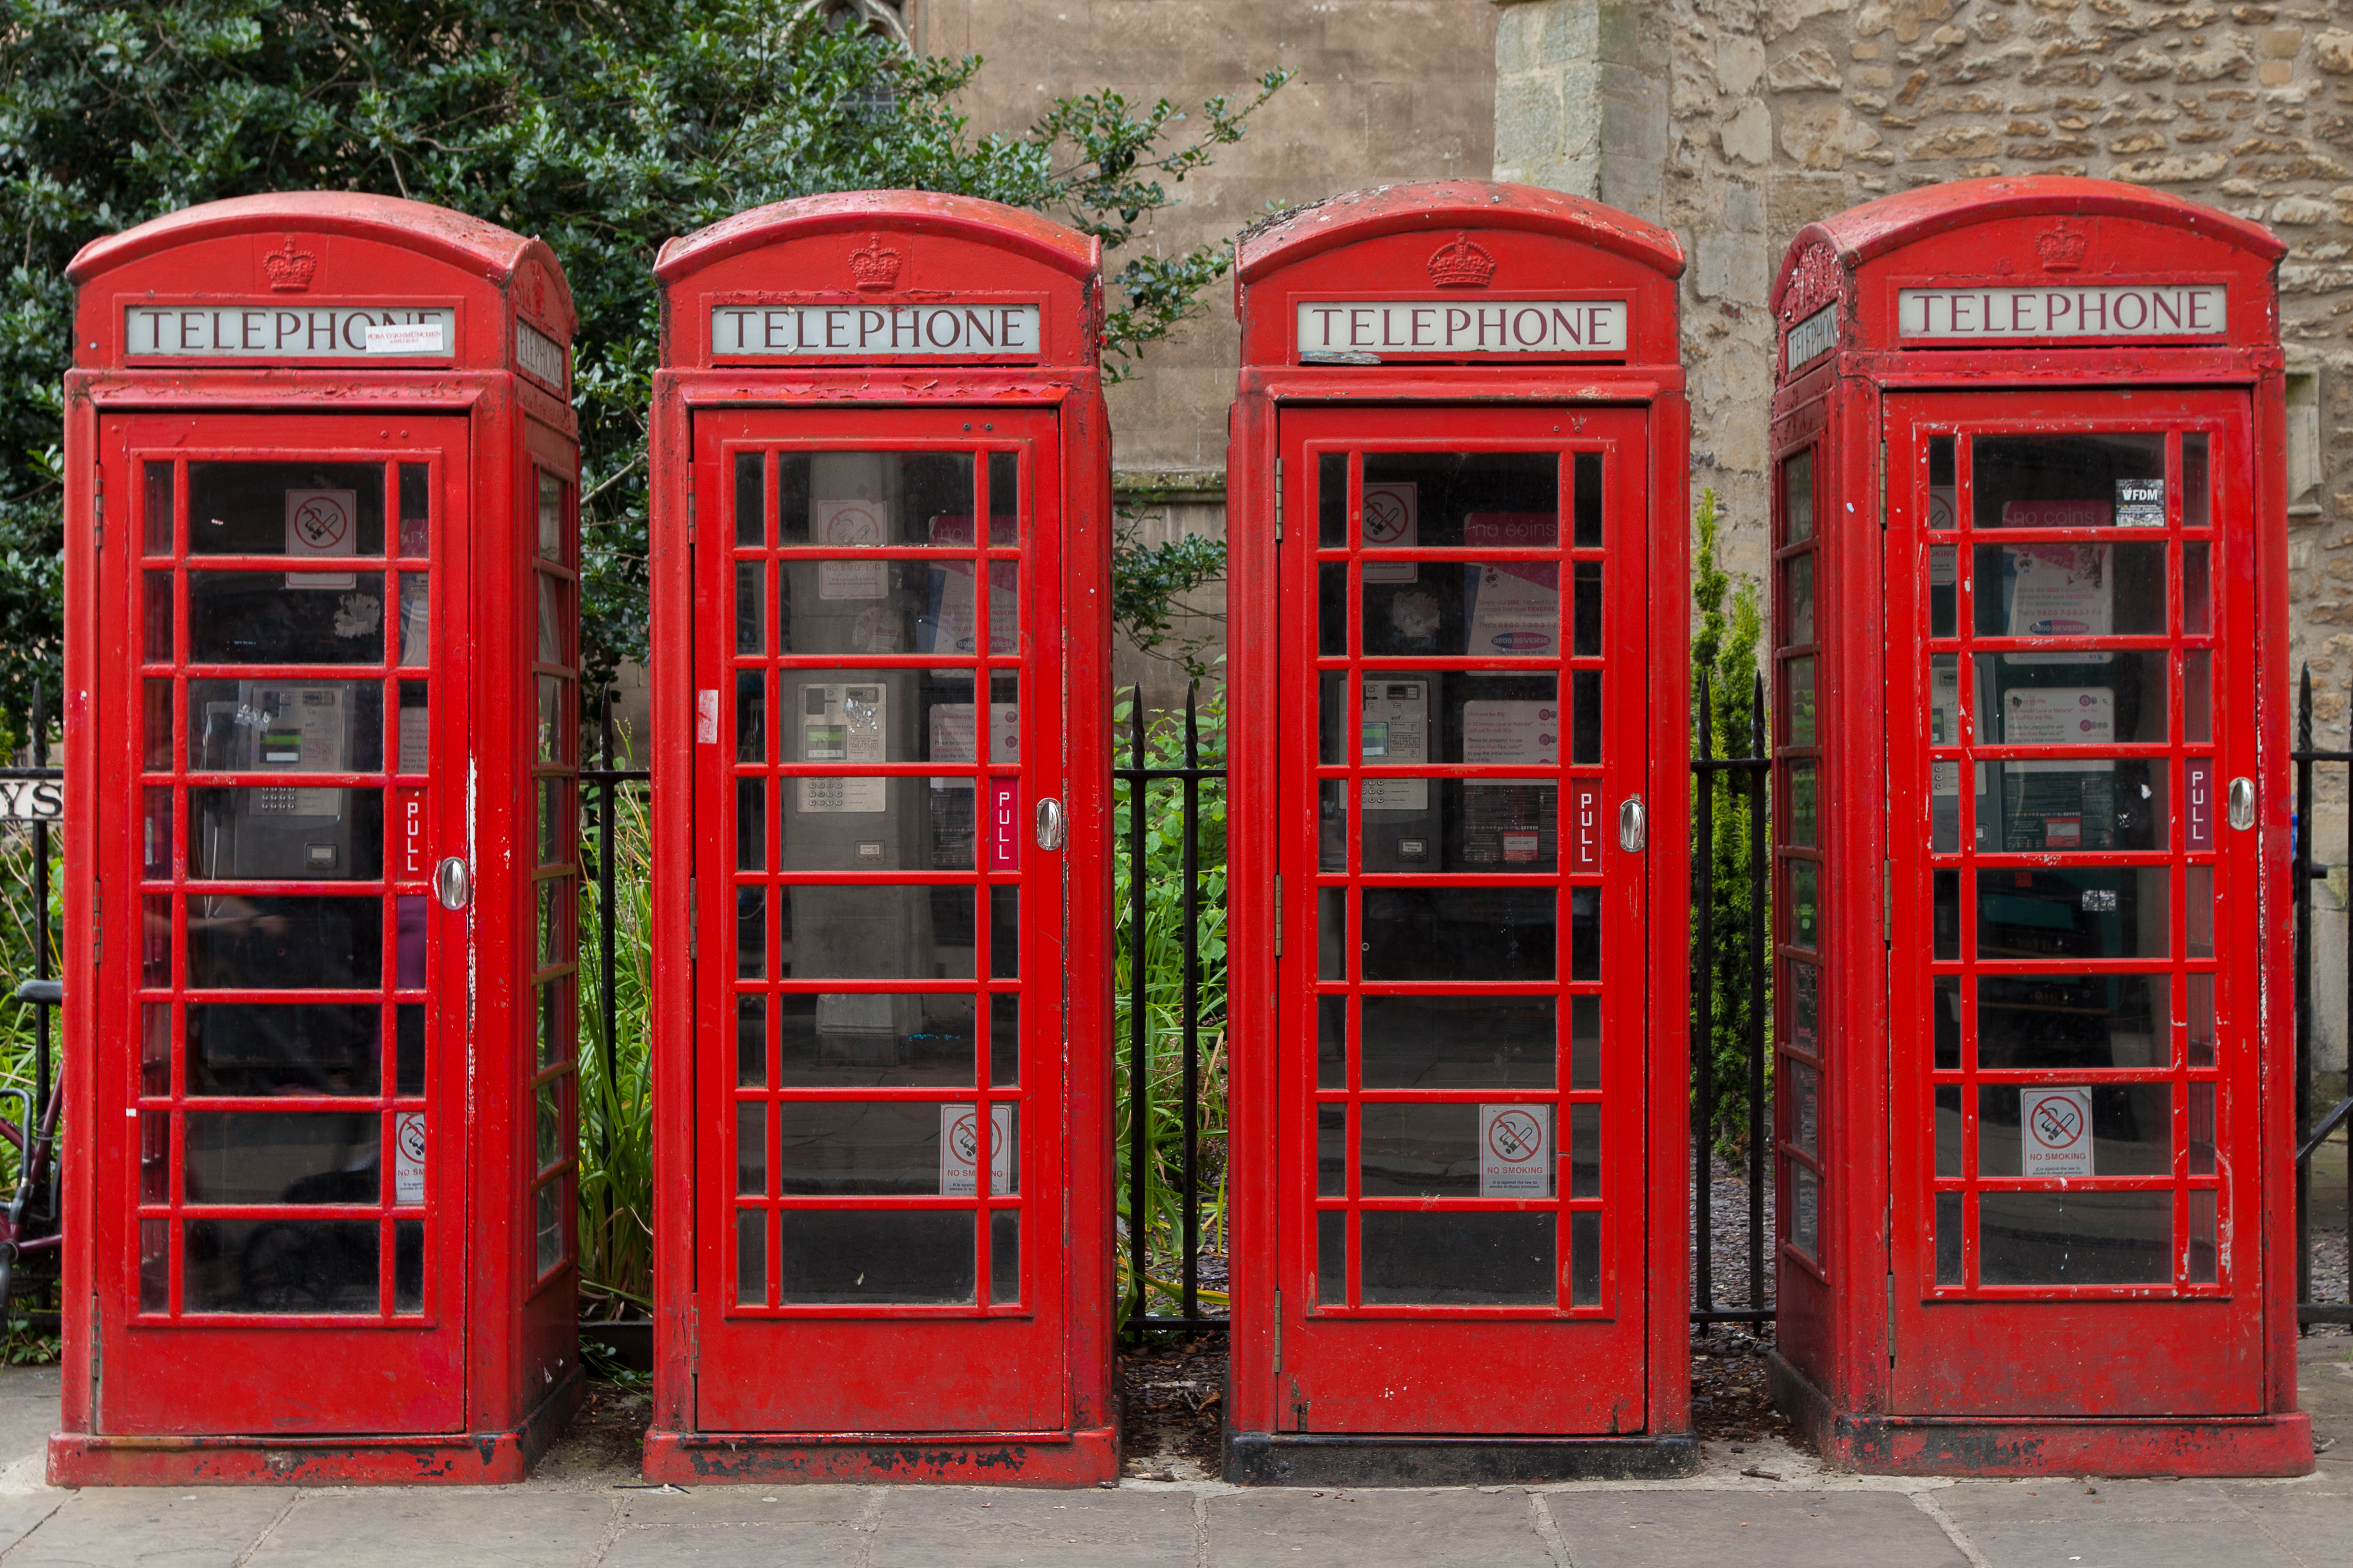 cabine t l phonique rouge red telephone box london londres photo picture image photography. Black Bedroom Furniture Sets. Home Design Ideas